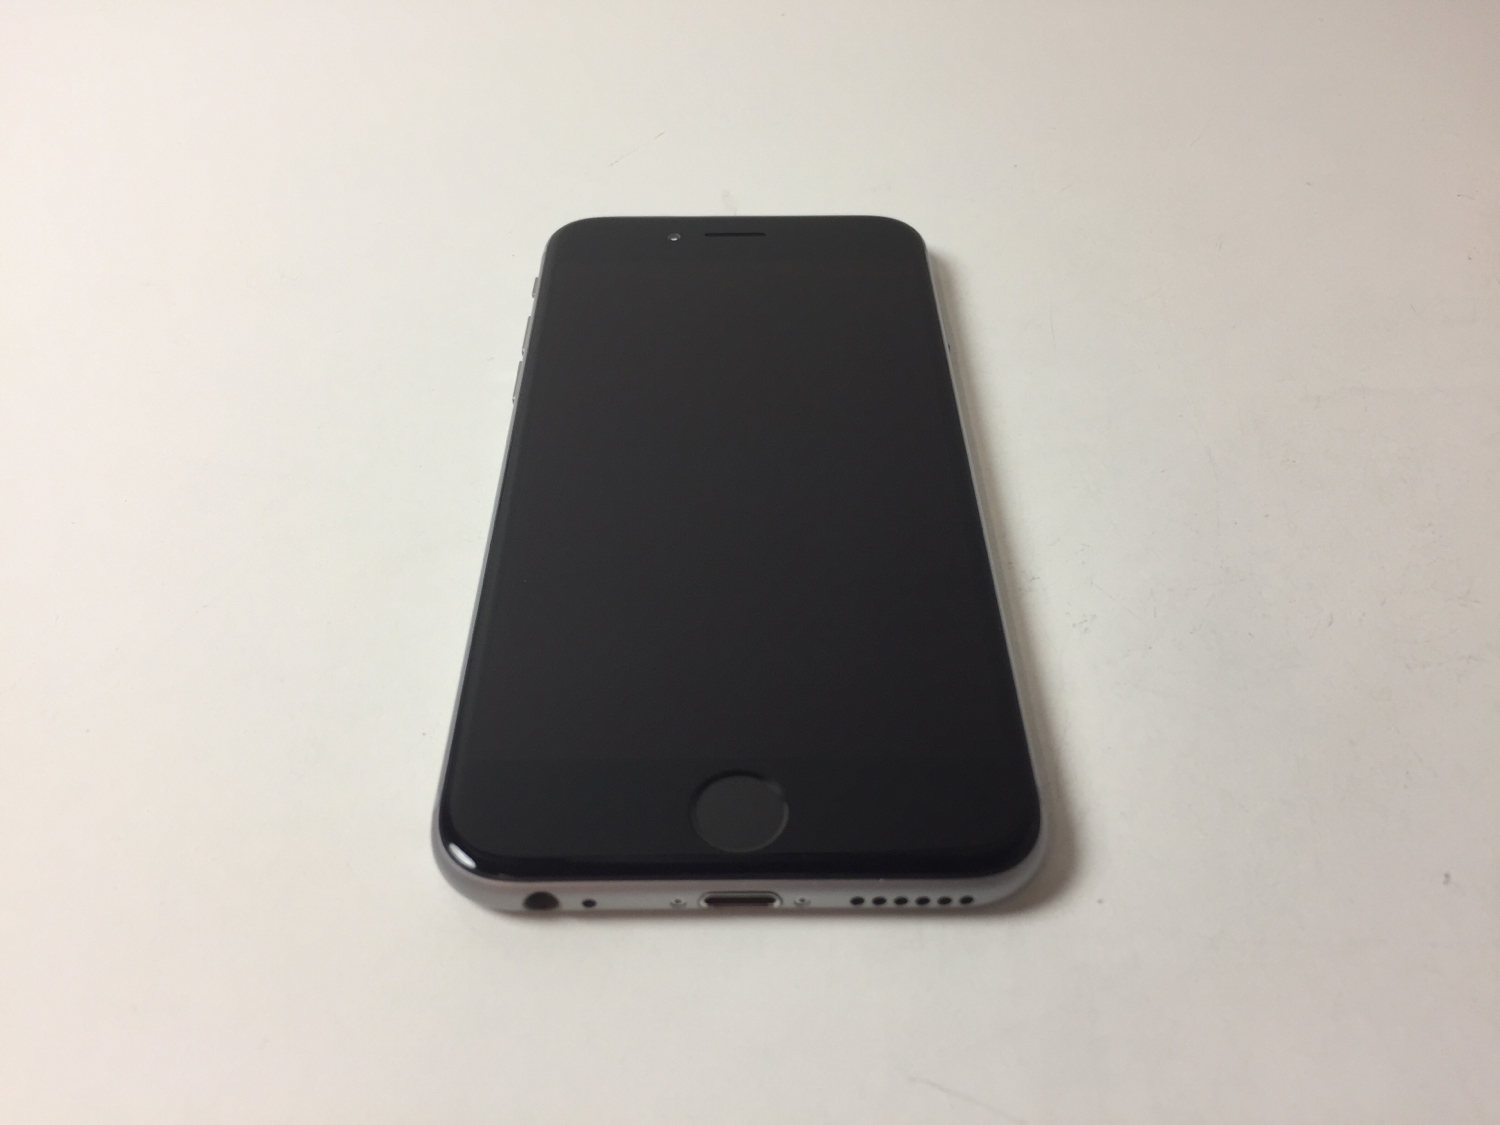 iPhone 6 16GB, 16 GB, SPACE GRAY, bild 1